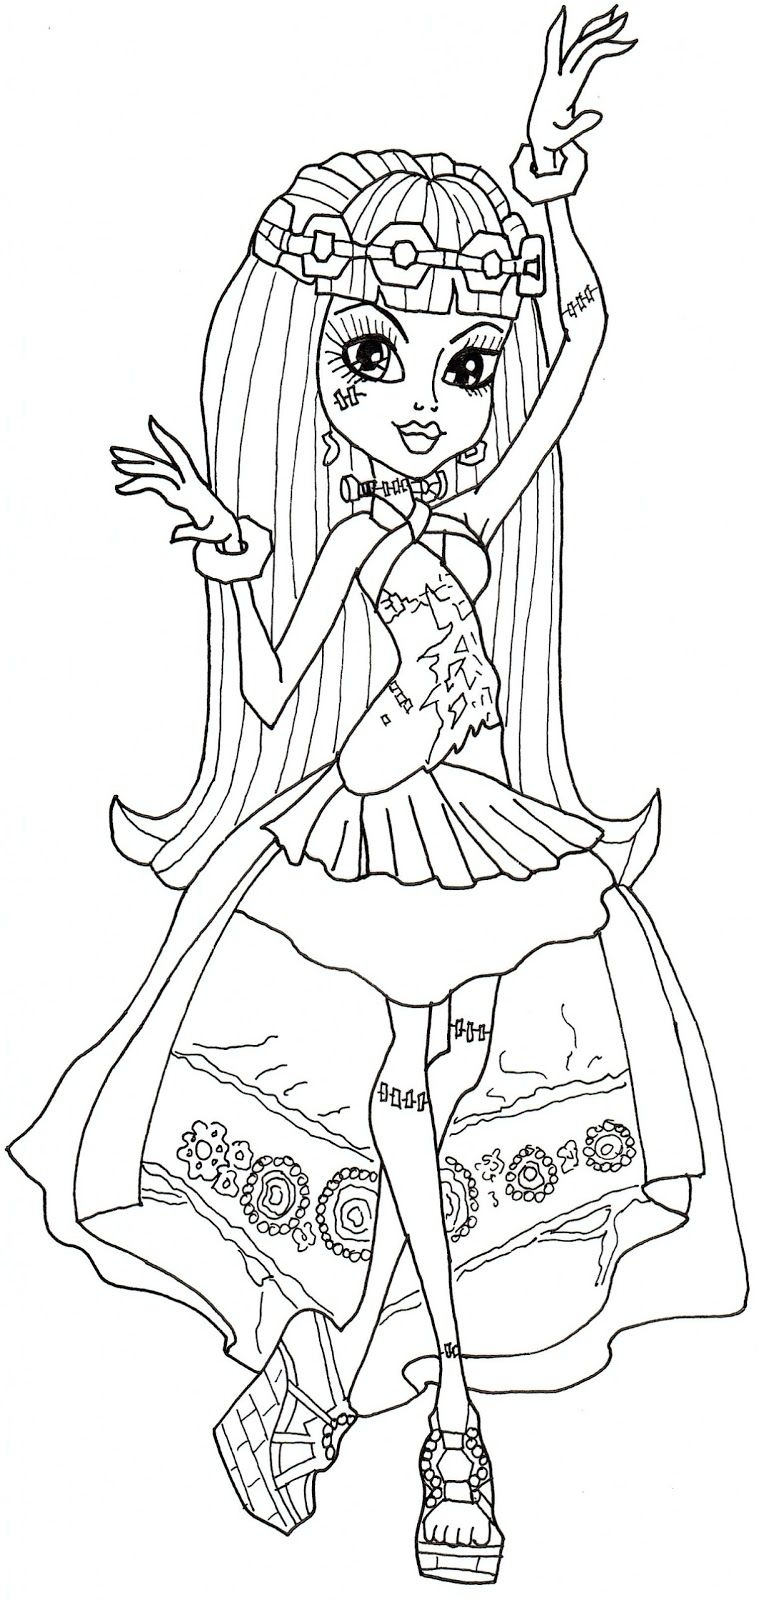 Free Printable Monster High Coloring Pages Frankie Stein 13 Wishes Coloring Page Halloween Coloring Pages Monster High Halloween Monster High Printables